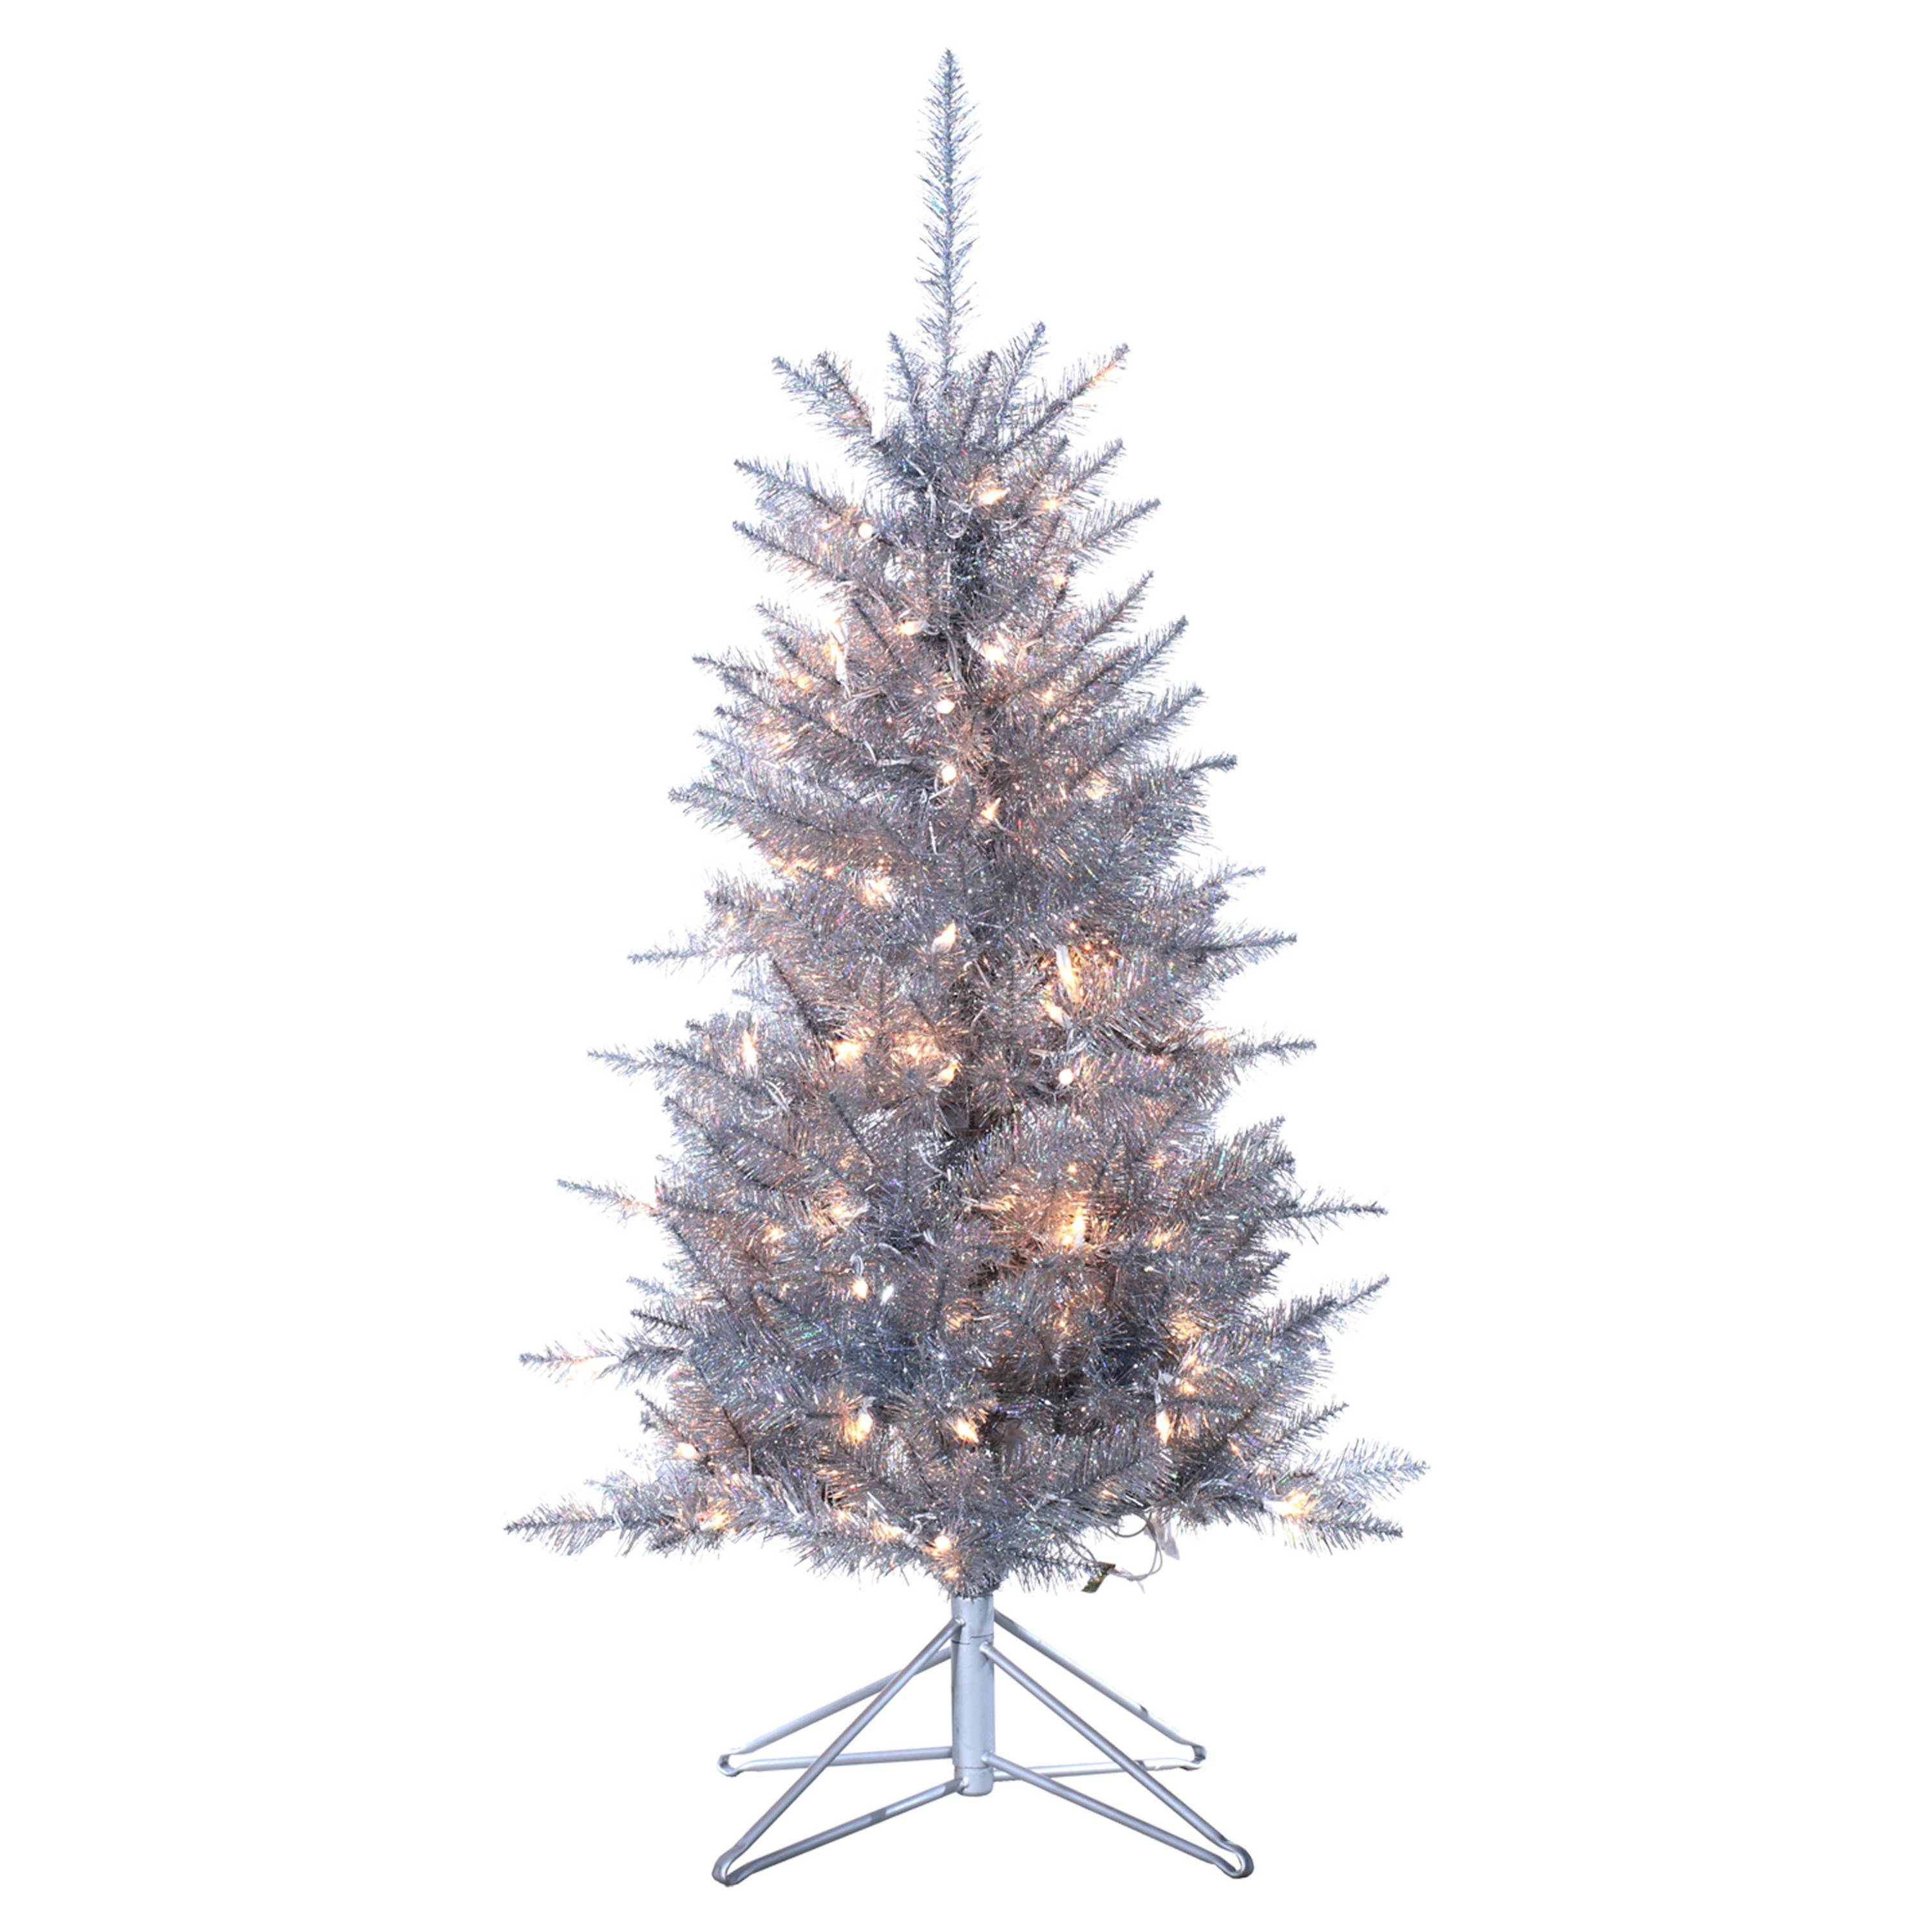 If You Have A Smaller Space To Work With, A Smaller, Funkier Tree Might Be  Just What You Need. This 4ft Pre Lit Artificial Christmas Pine In Silver  Tiffany ...